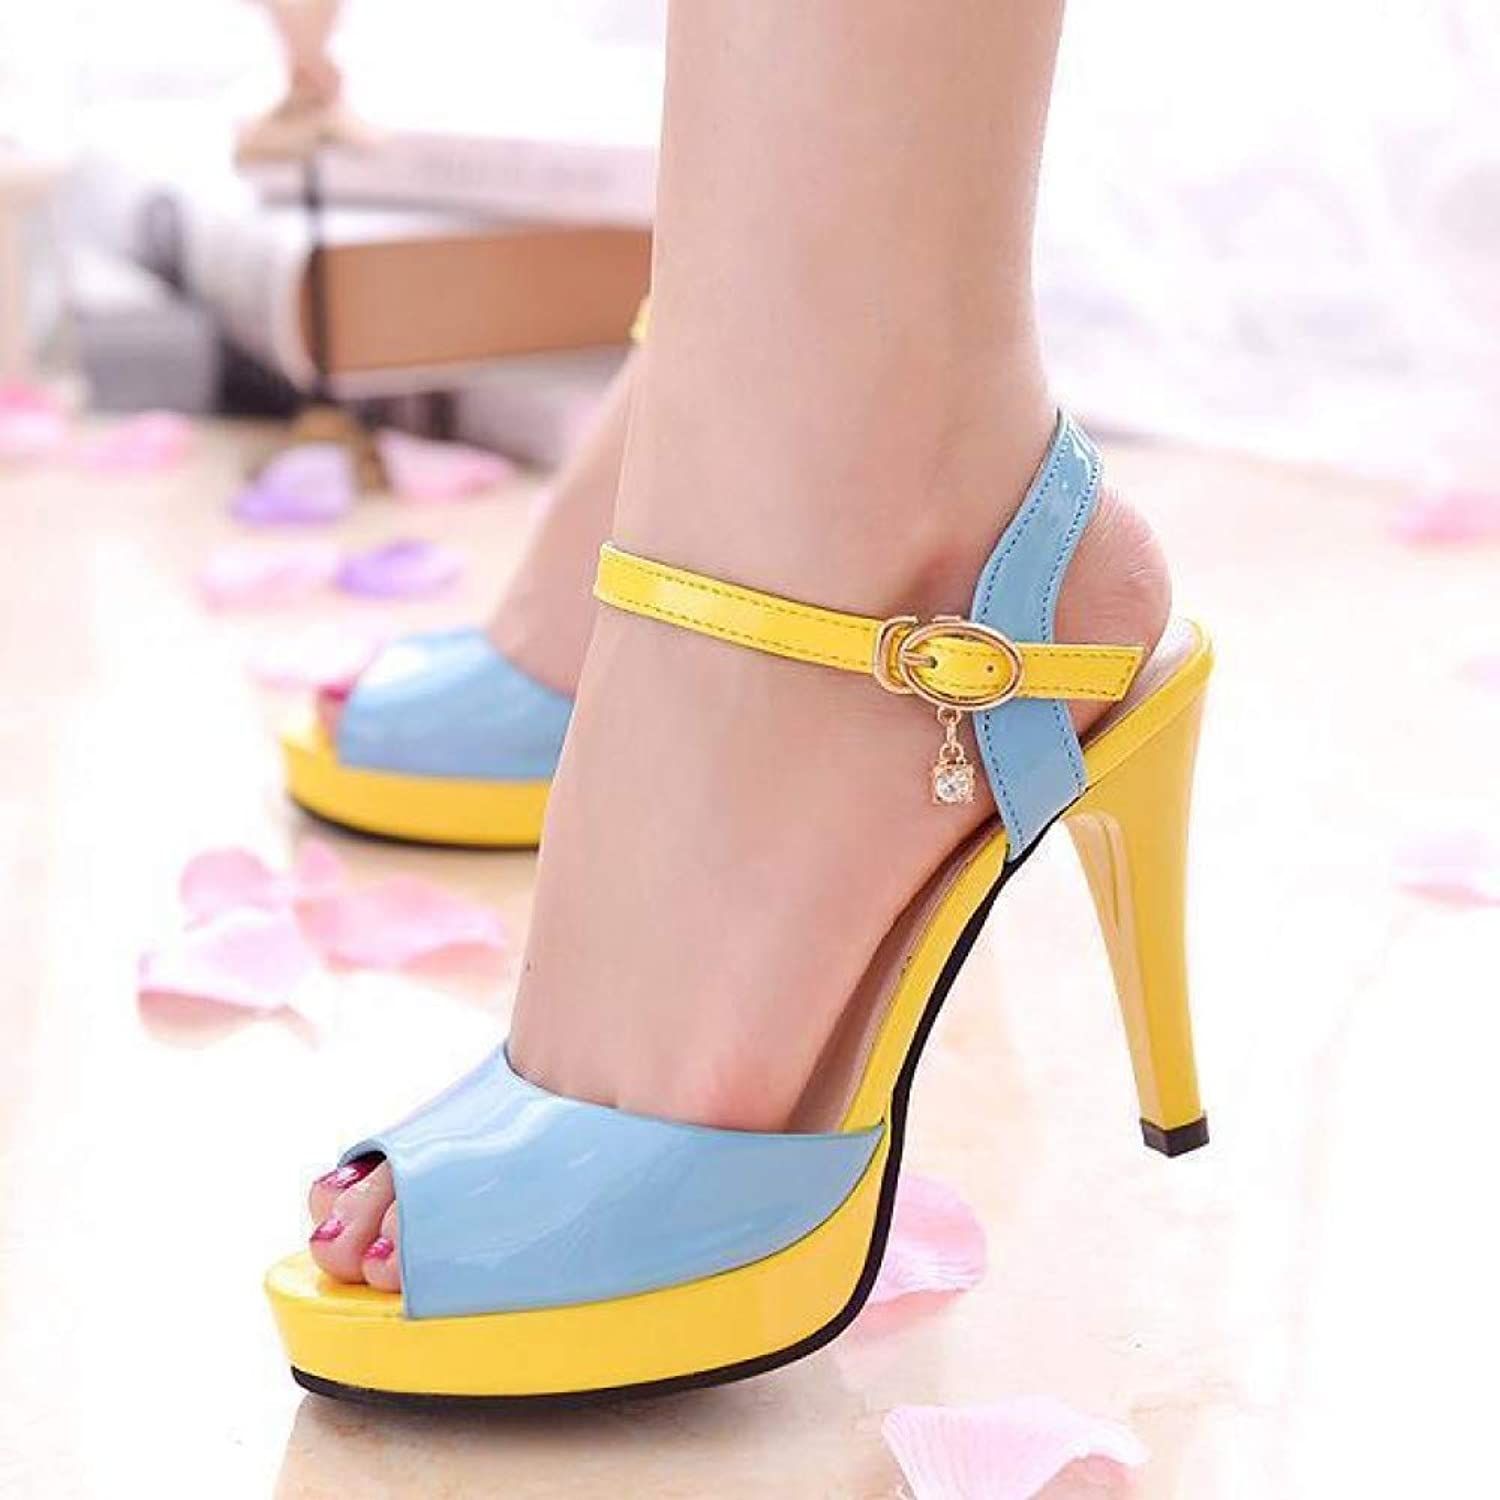 UKJSNHH igh Heels Summer Hollow Buckle Women's shoes European and American Fight color Fish Mouth Fine with High Heels Young Daily shoes size34-40